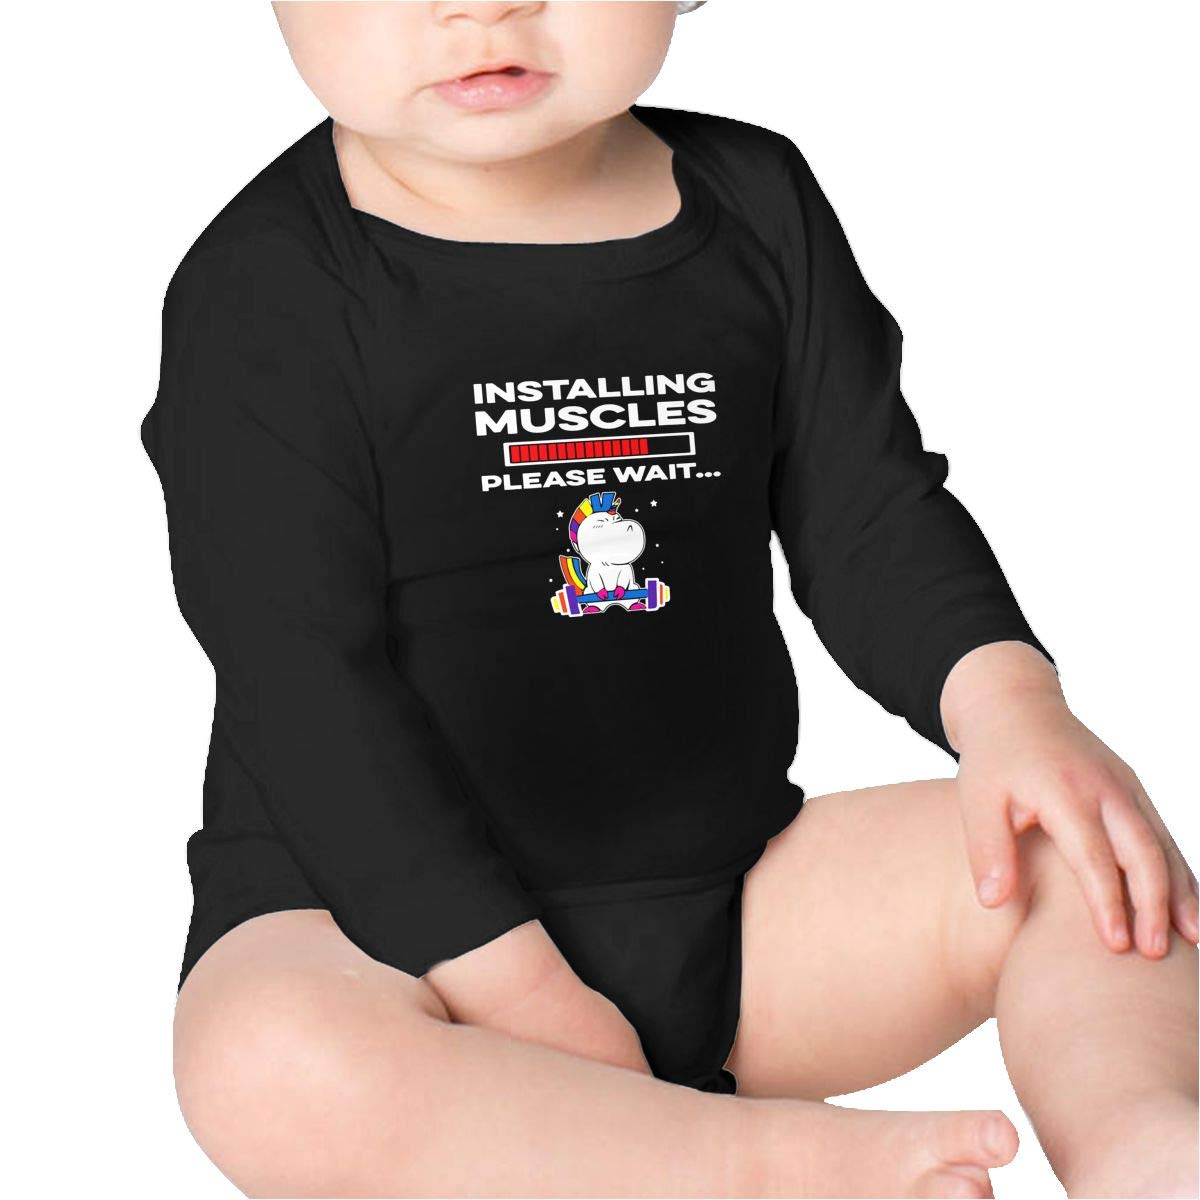 Installing Muscle Please Wait Unicorn Toddler Cotton,Long Sleeve Baby Romper